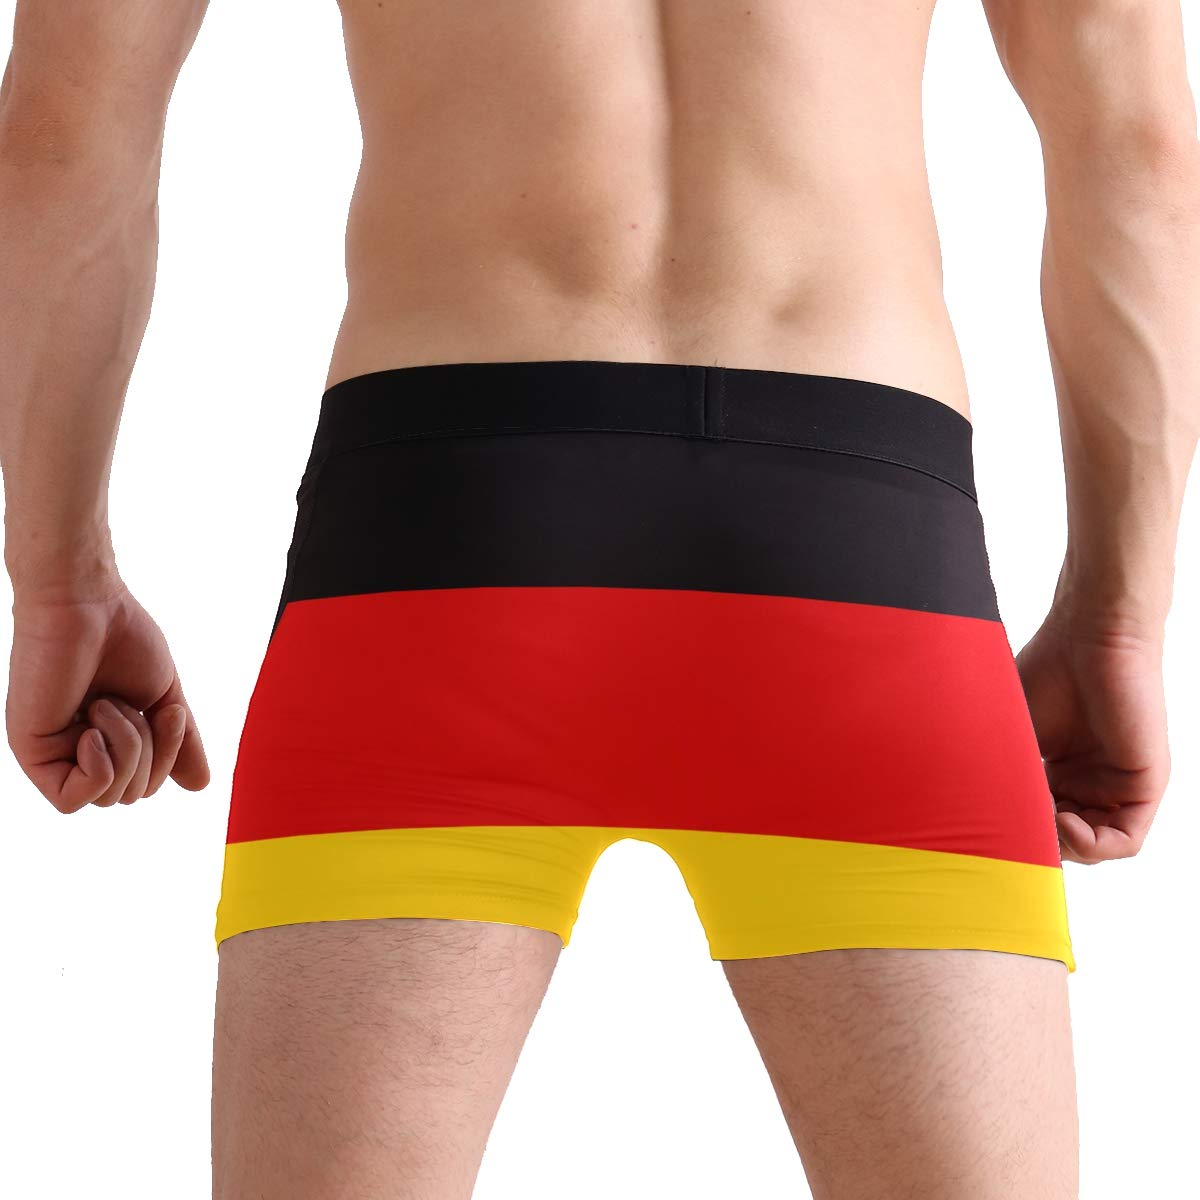 Abbylife Flag Mens Underwear Boxer Breathable Underpants Briefs S-XL